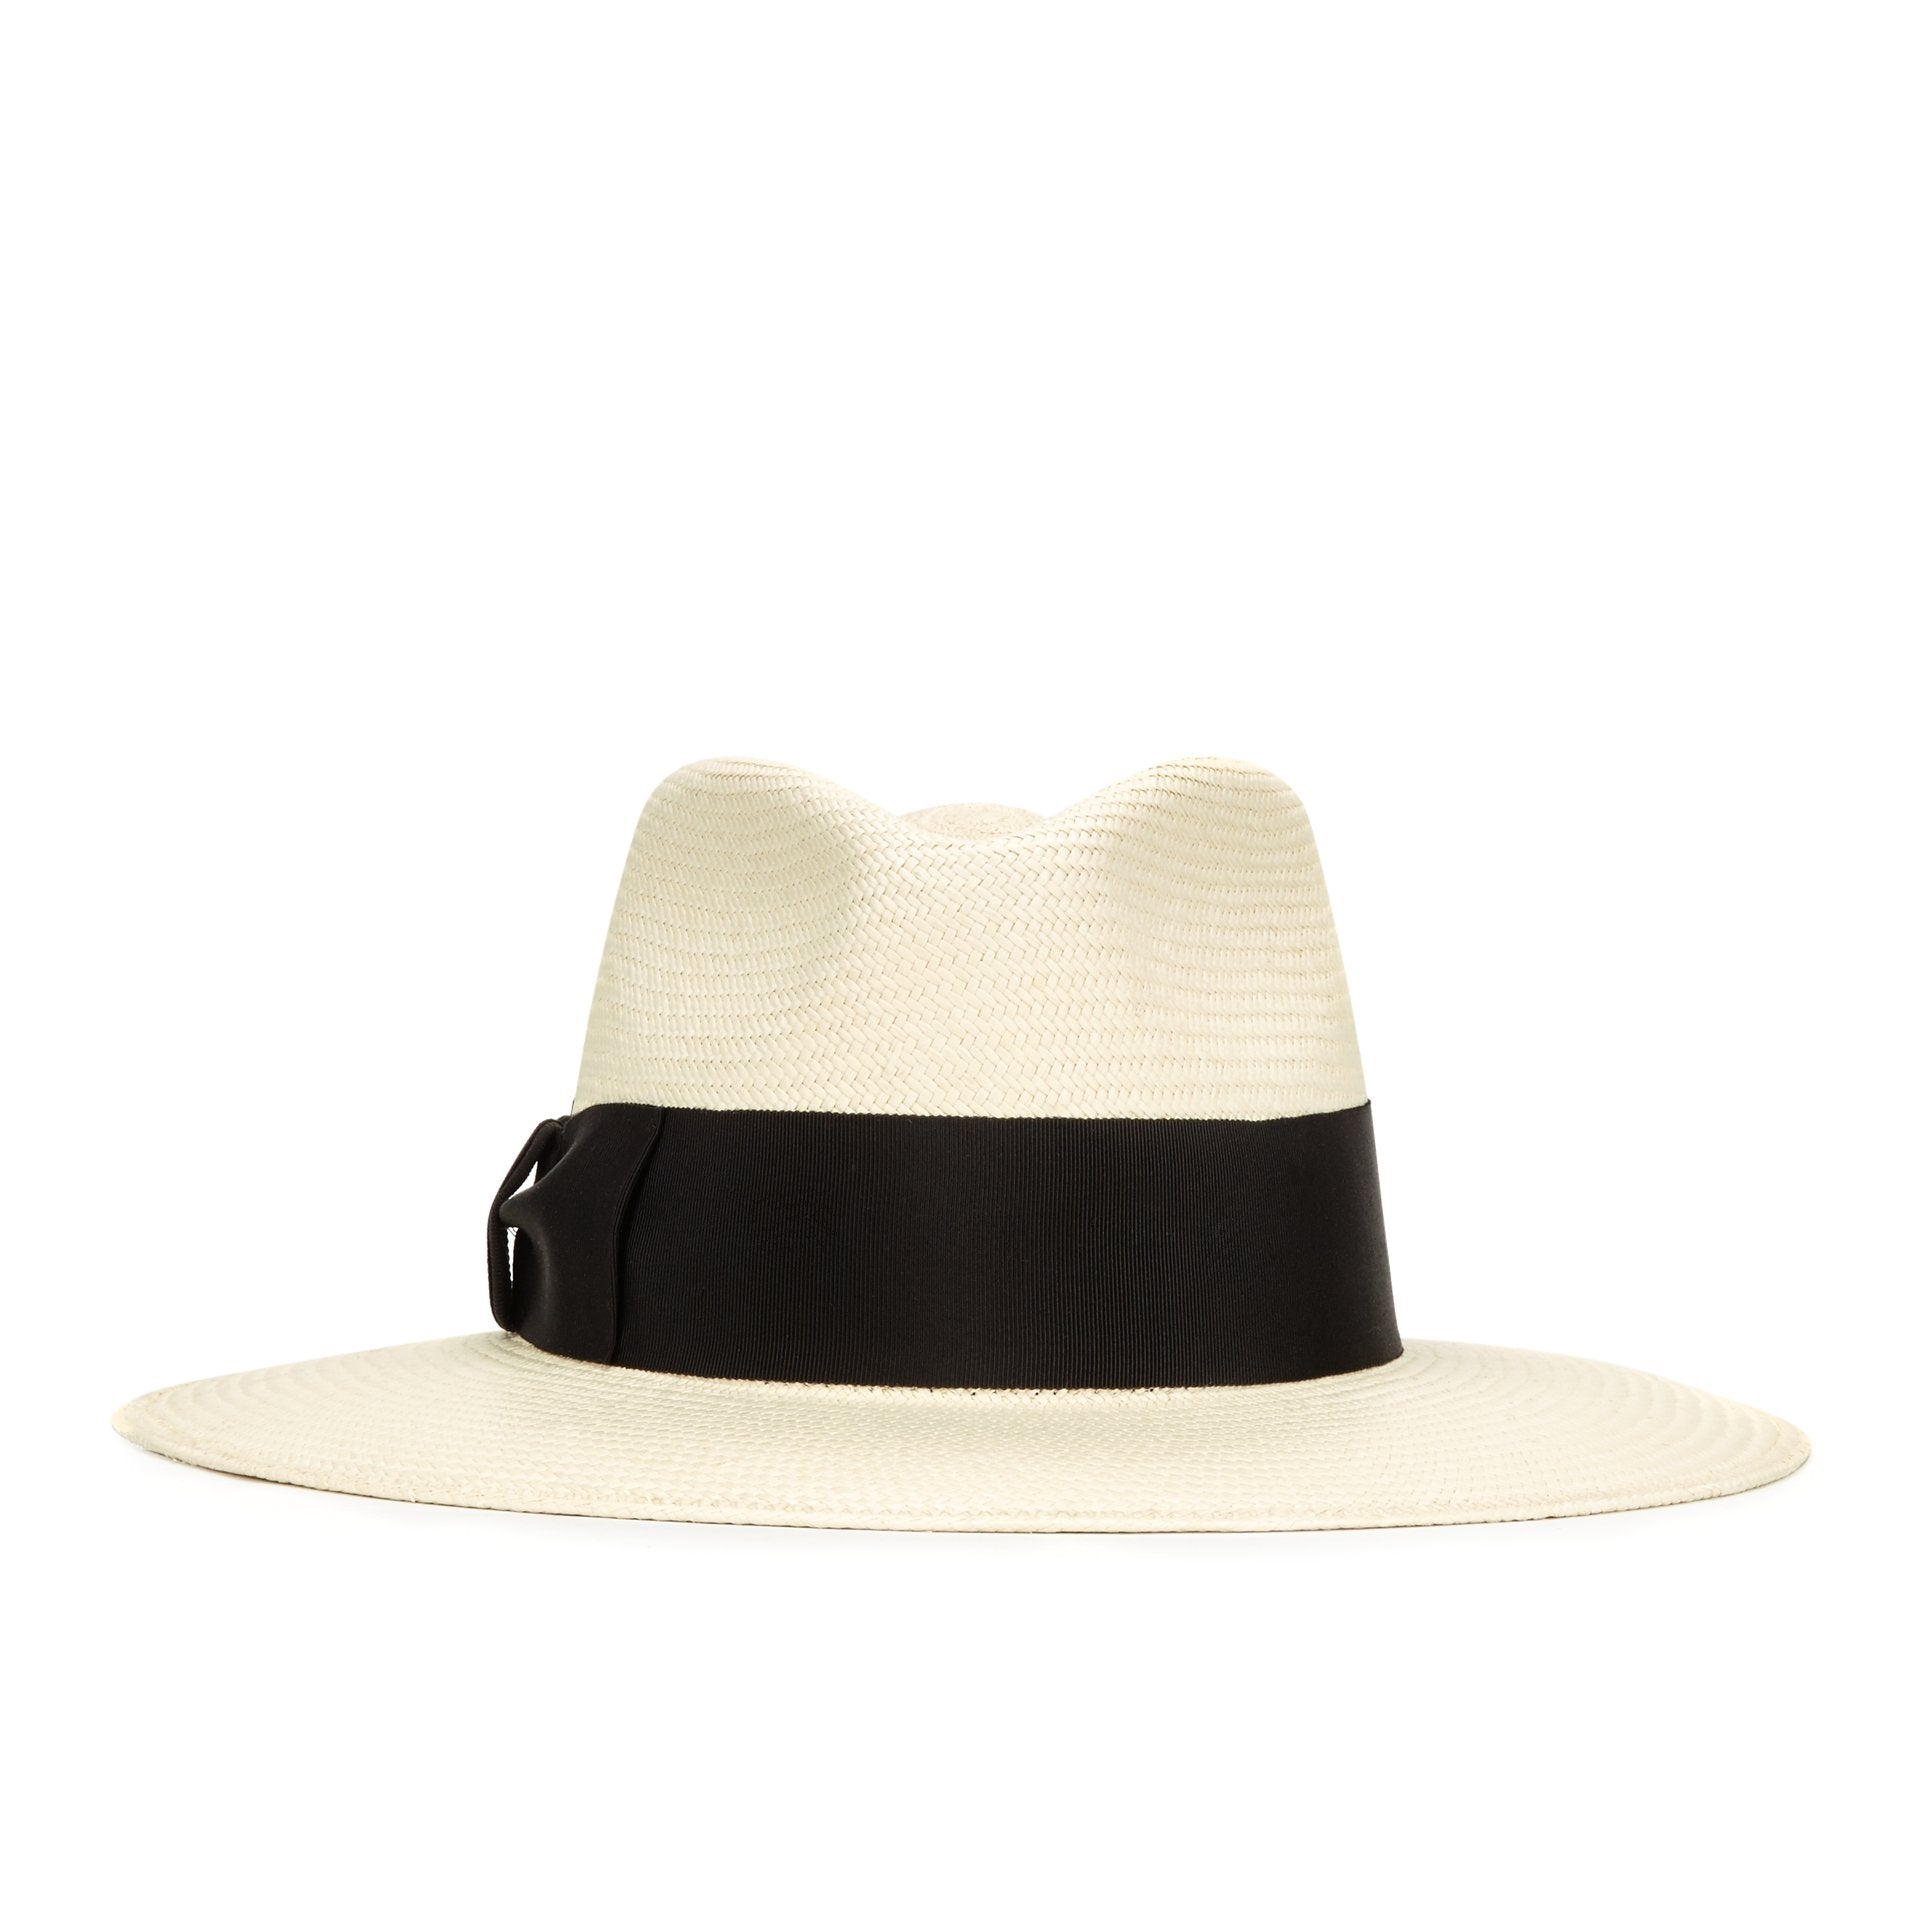 Peacehaven Panama - Women's hats - Lock & Co. Hatters London UK